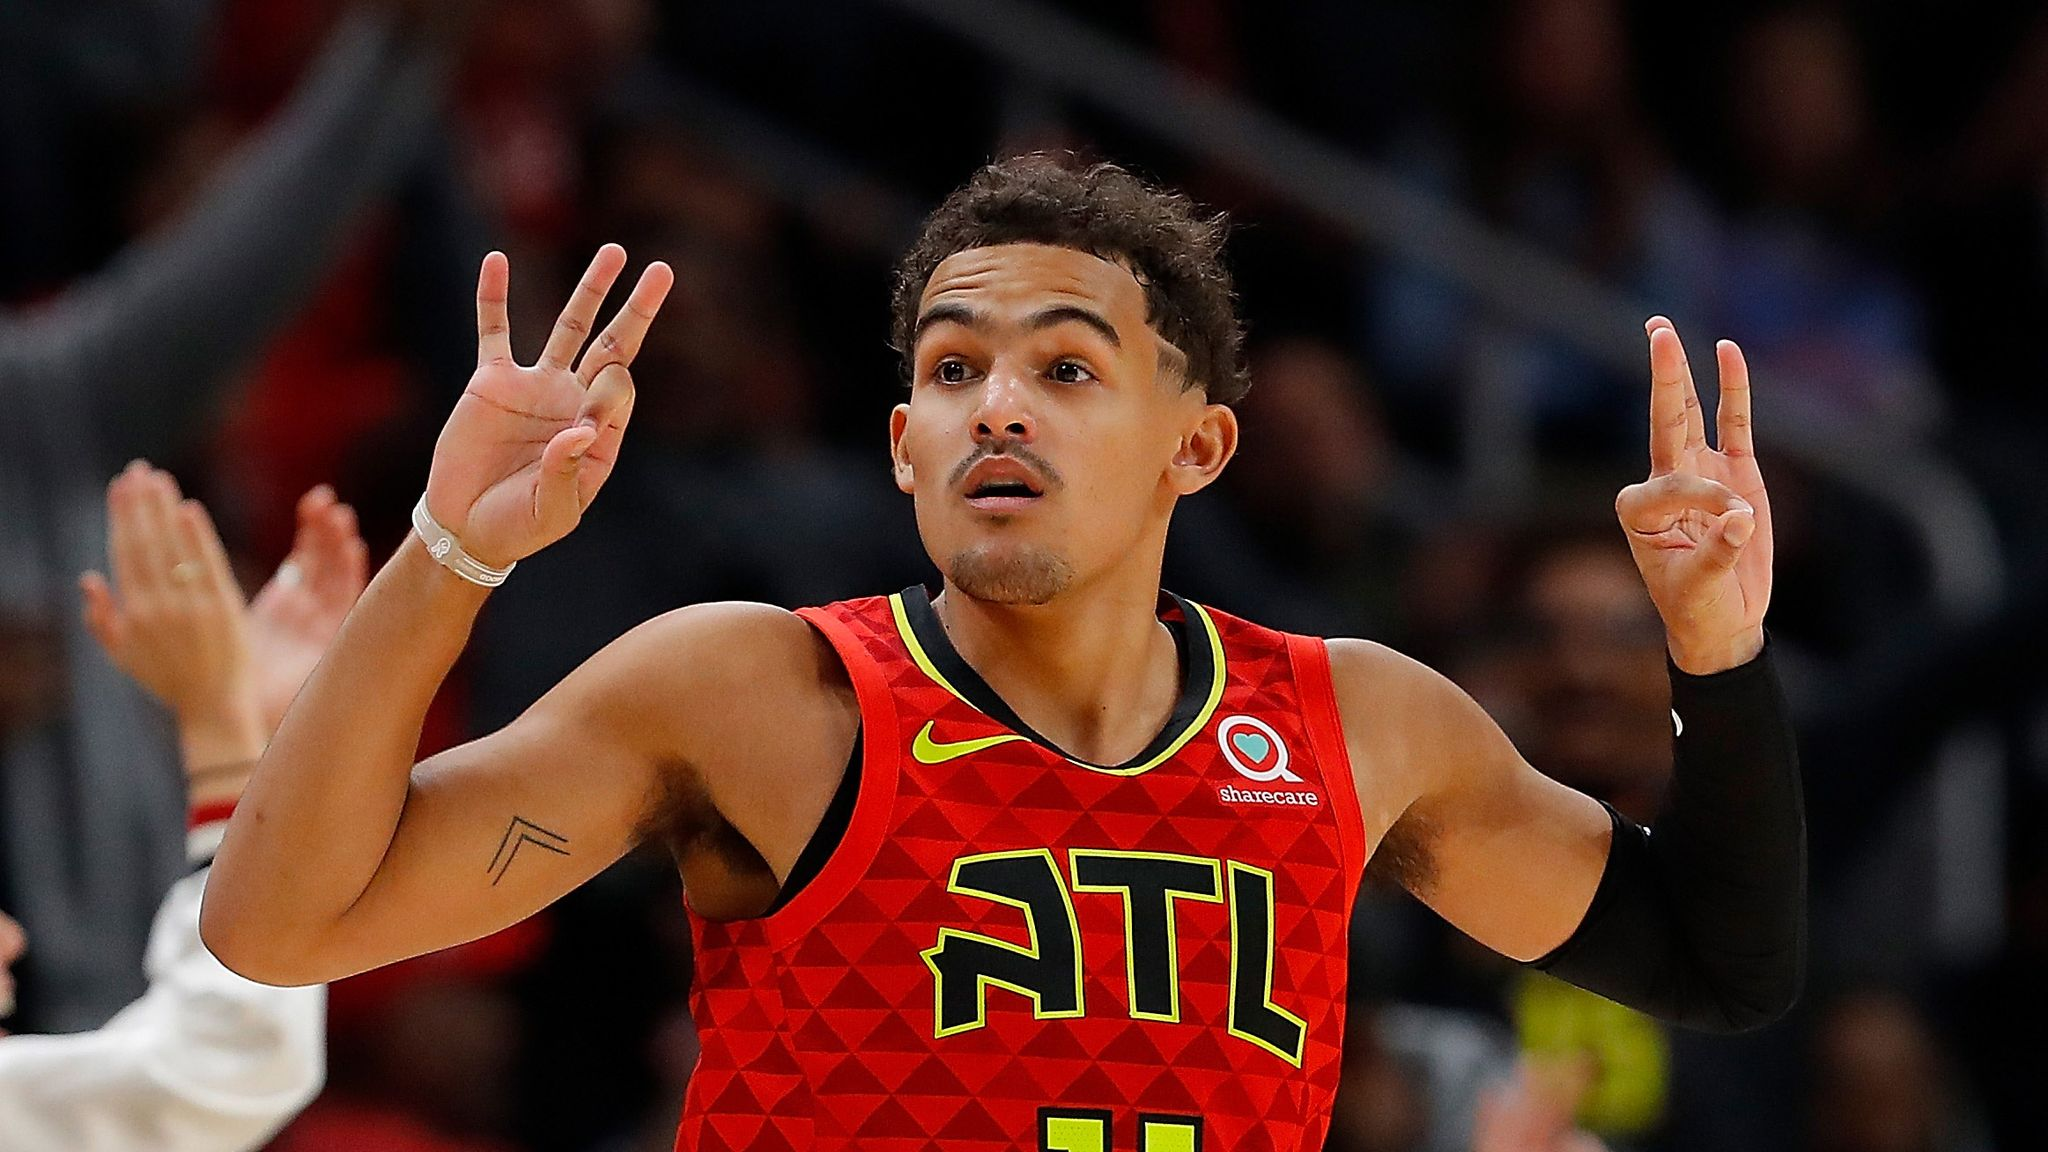 Trae Young Returned From Injury With 29 Points And 13 Assists To Lead The Atlanta Hawks To Victory Over The San Antonio Spurs